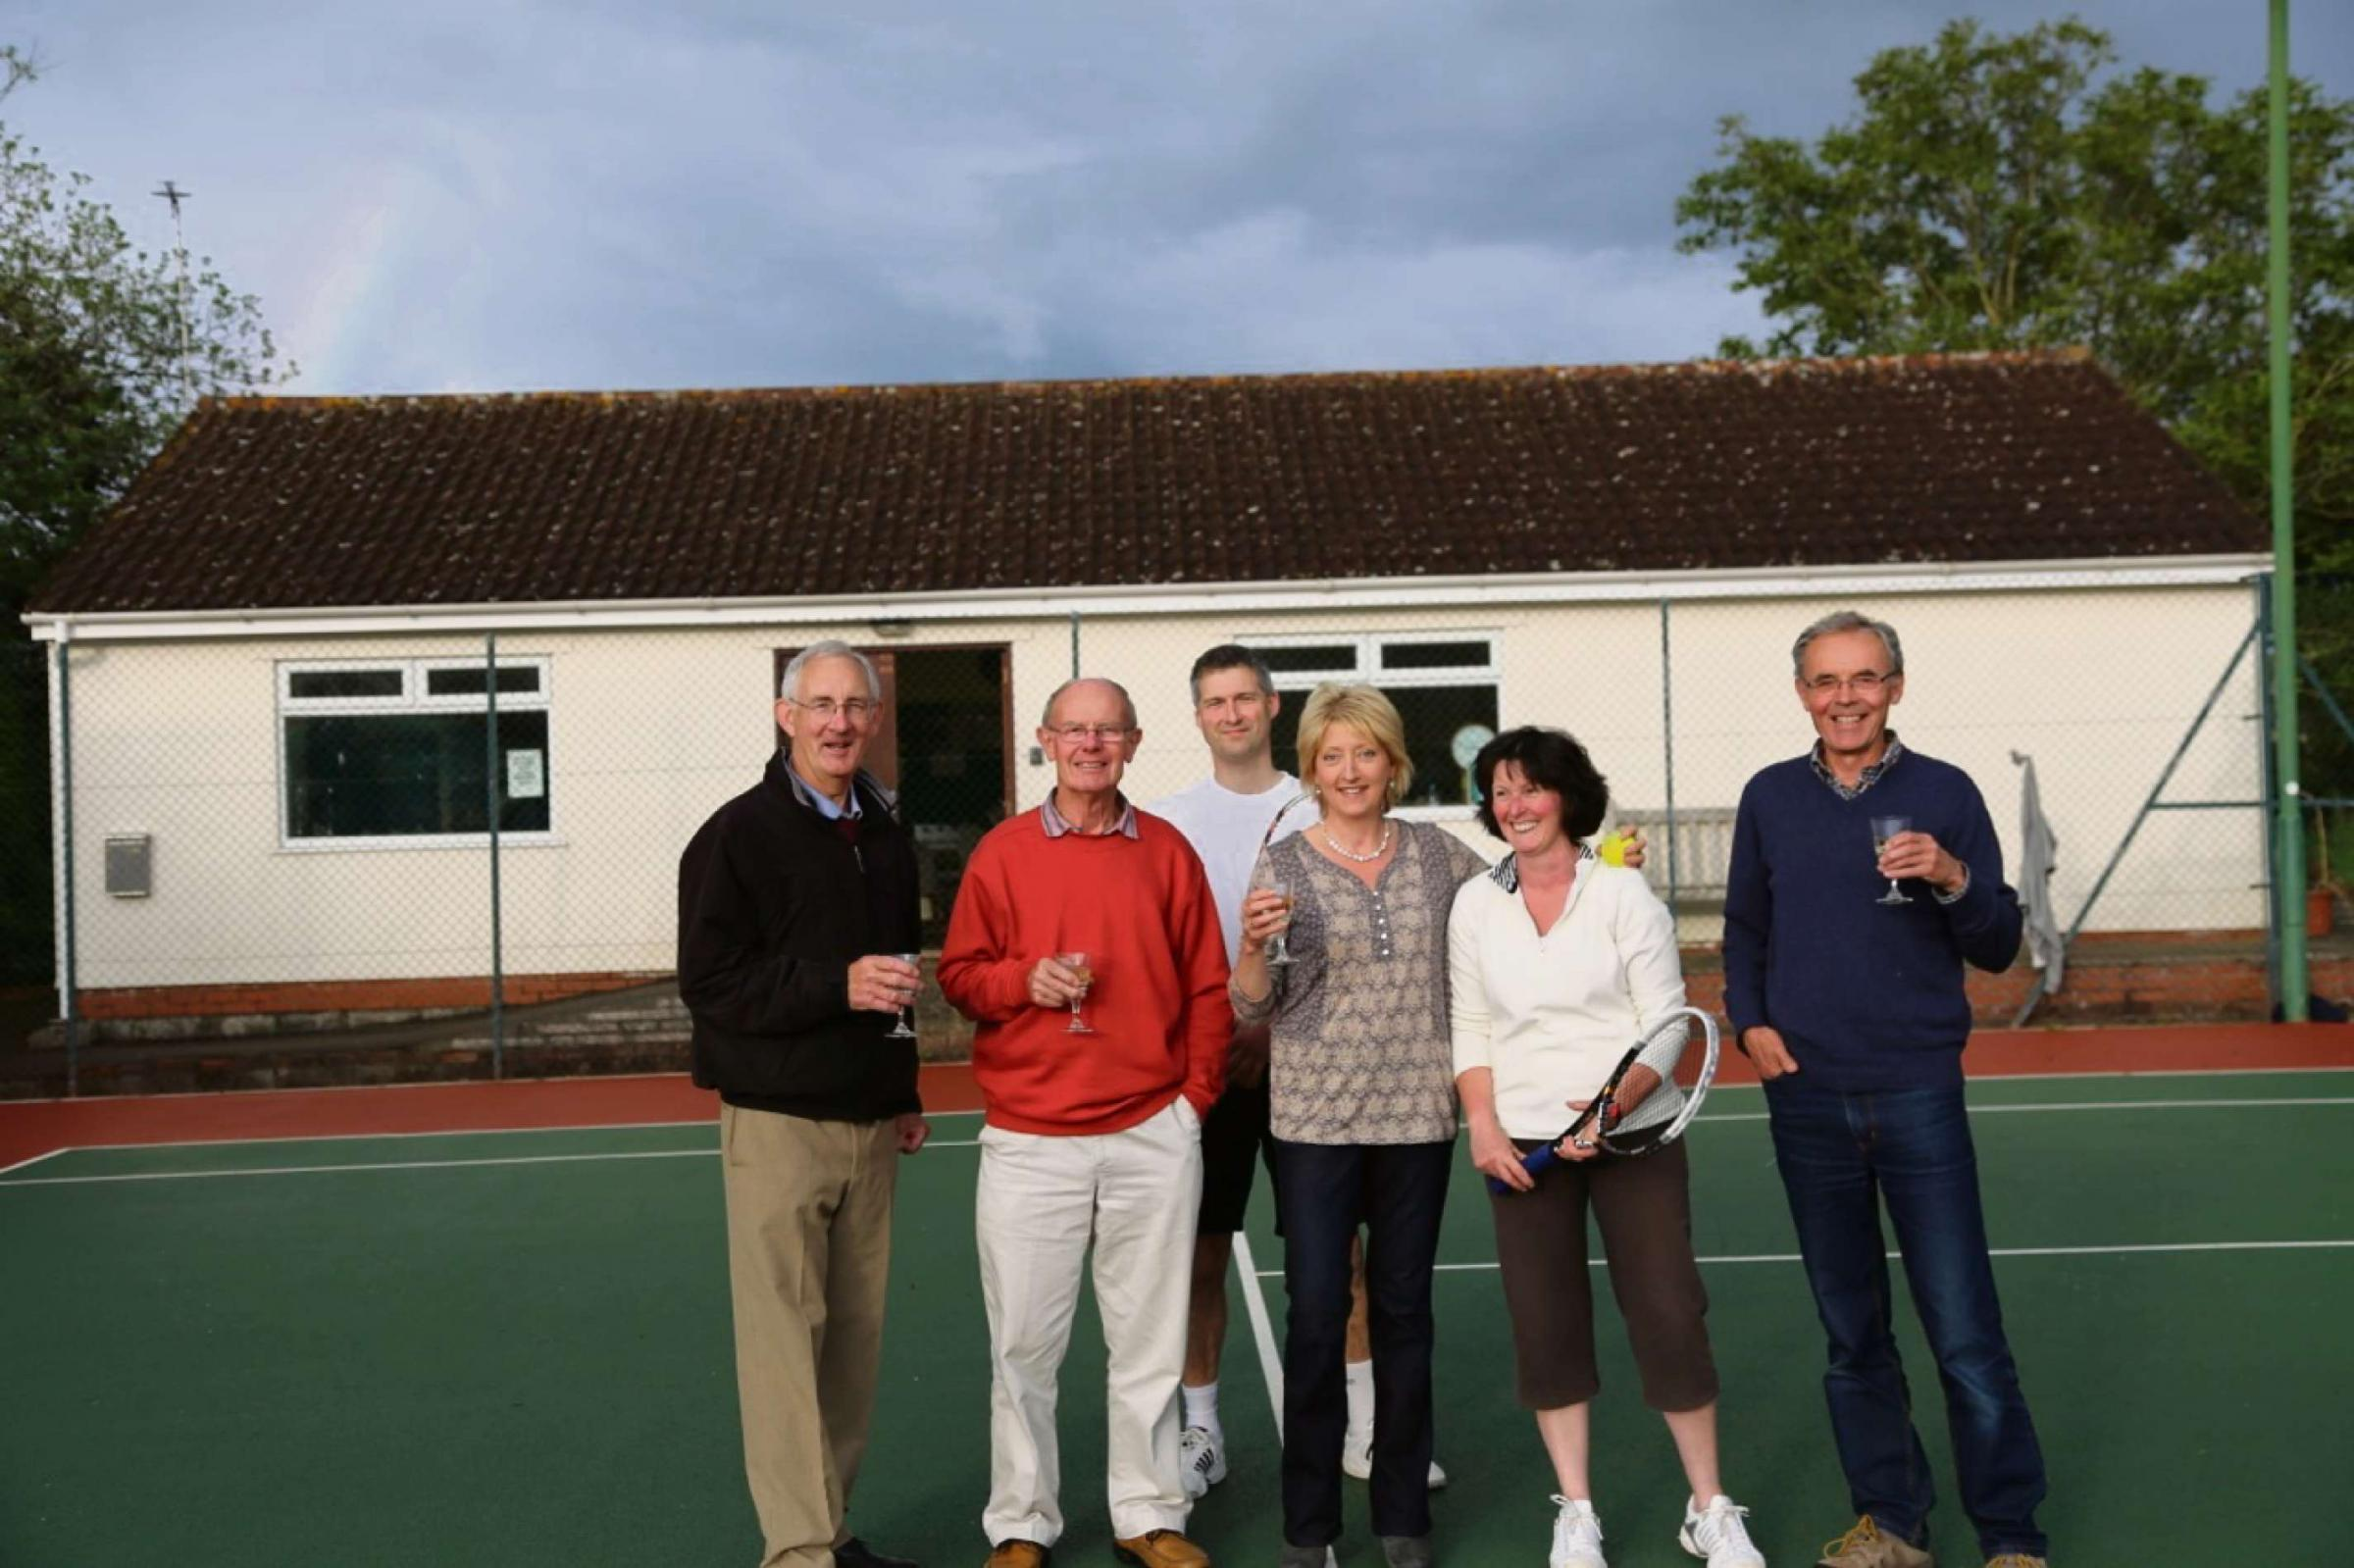 Thornbury Tennis Club members celebrate in front of their clubhouse